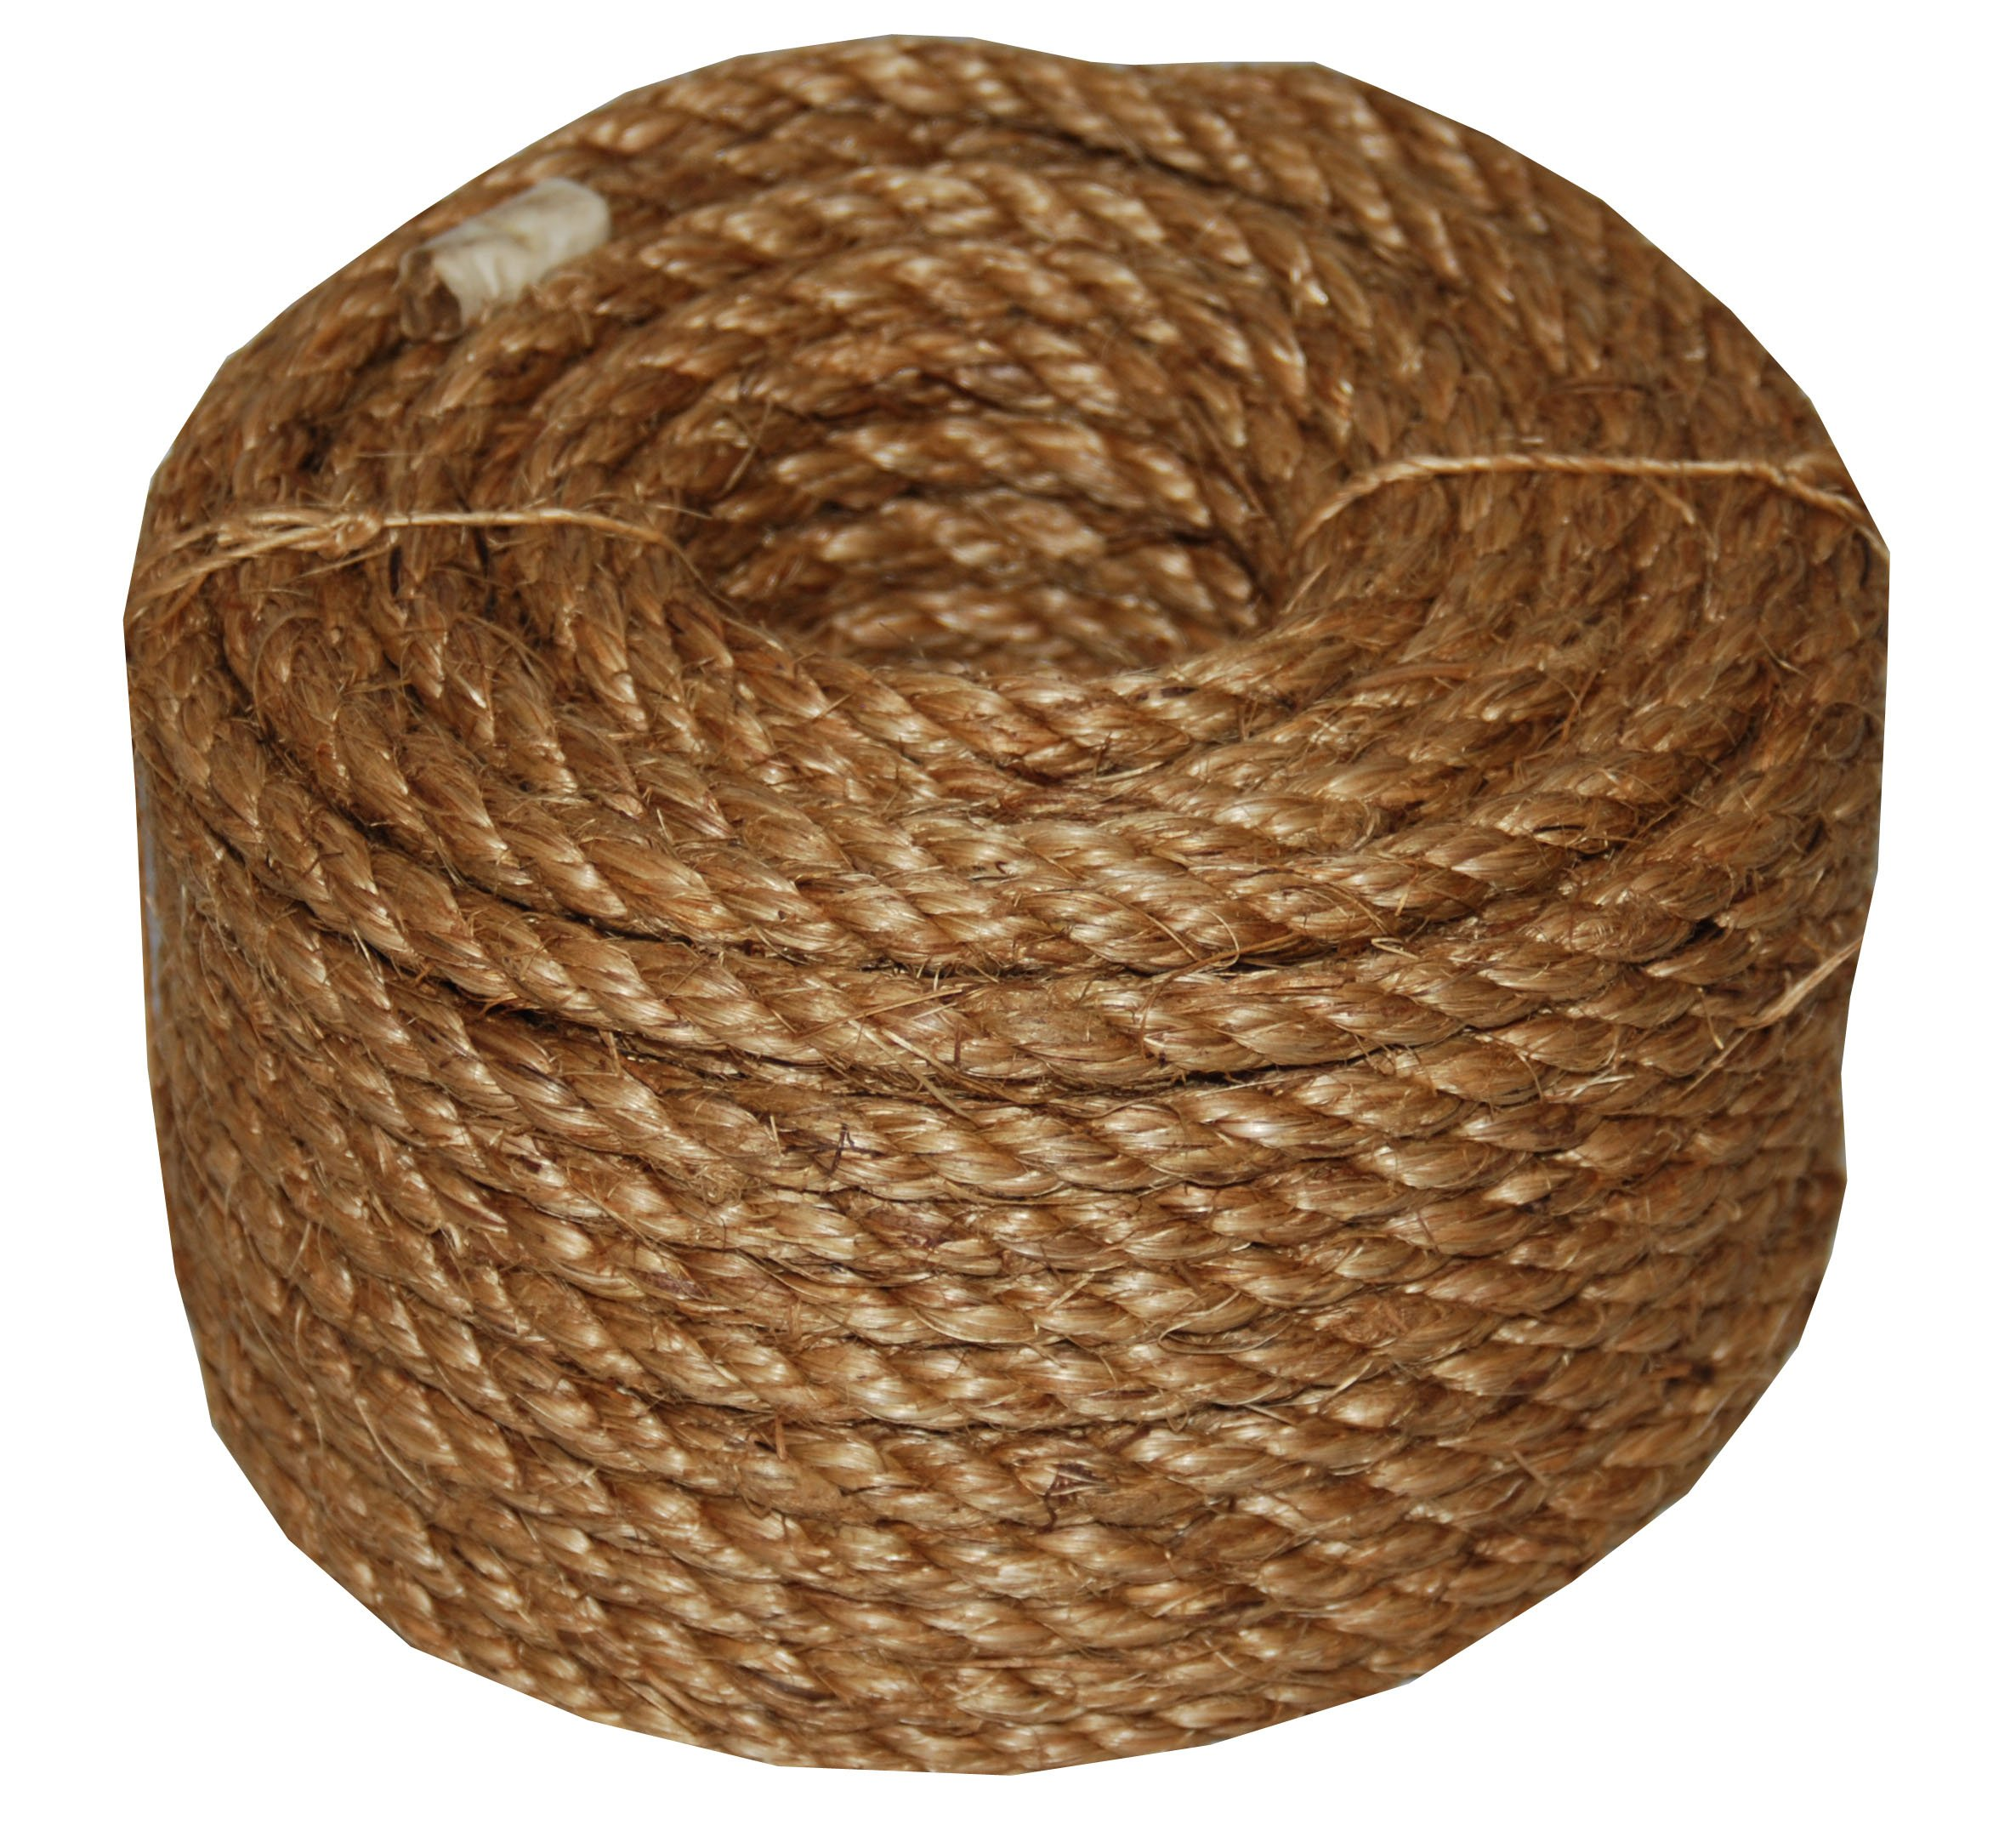 T.W Evans Cordage 26-023 1/2-Inch by 100-Feet 5 Star Manila Rope by T.W . Evans Cordage Co.